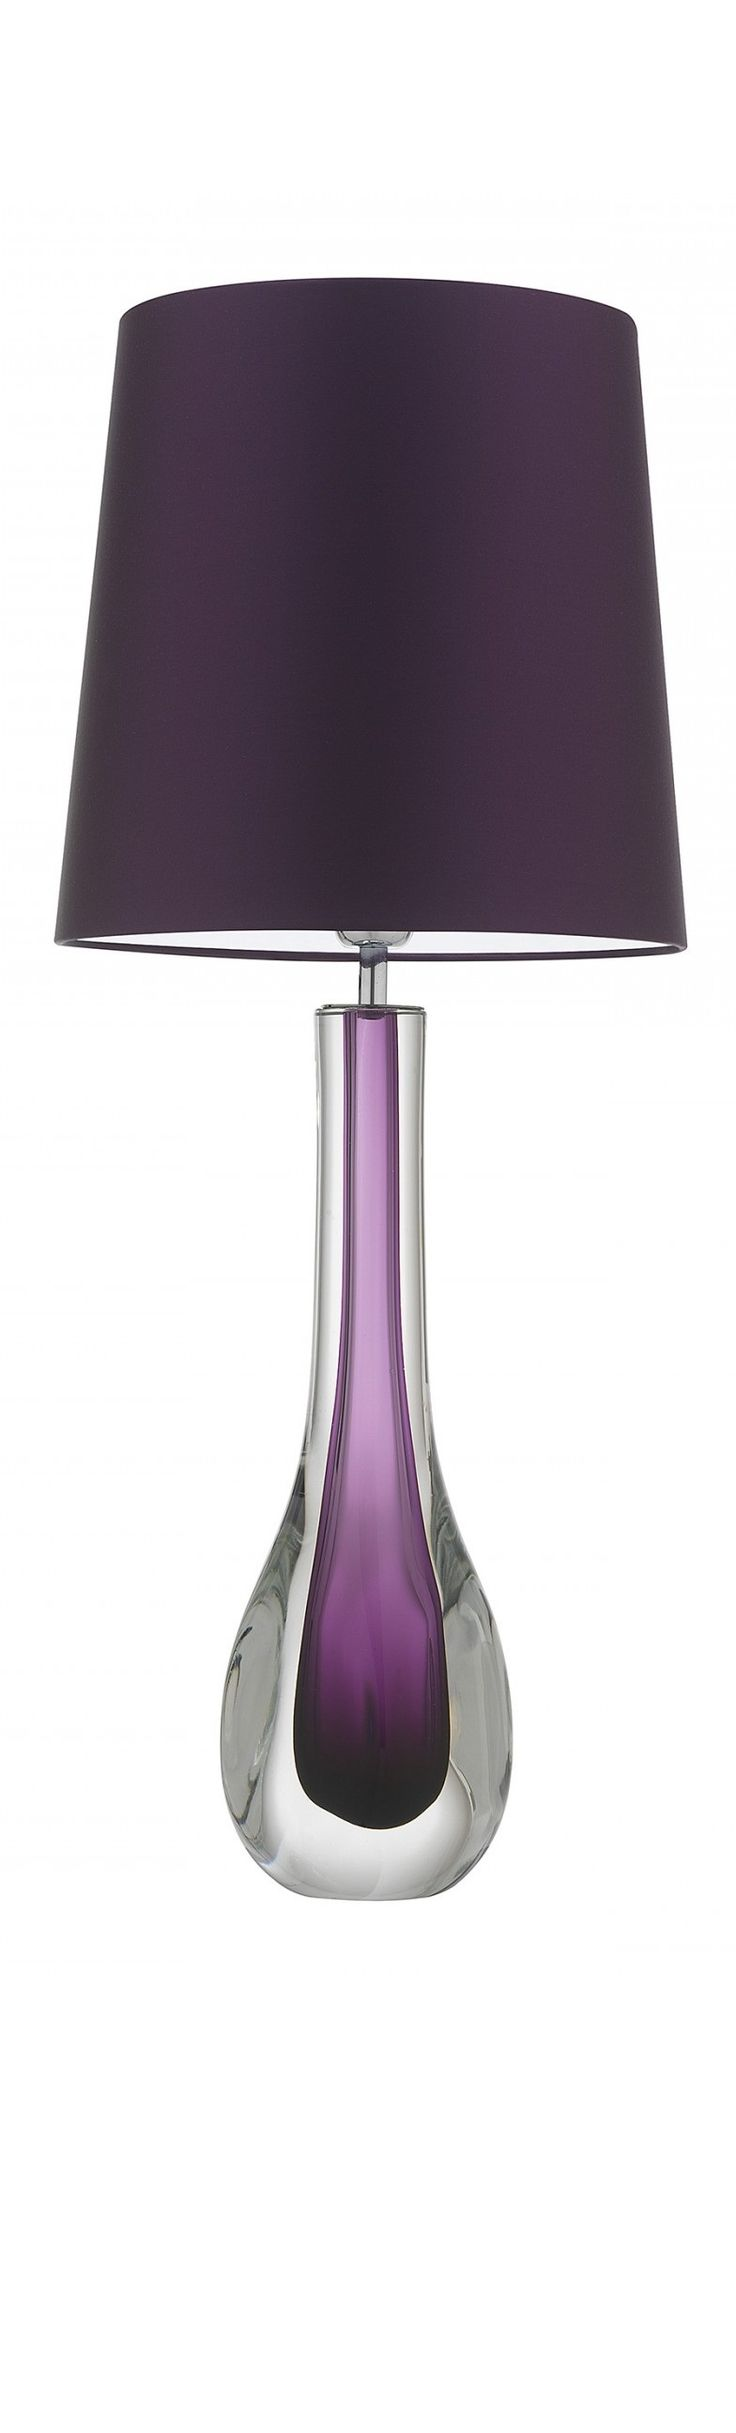 """Purple Lamp"" ""Purple Lamps"" ""Purple Lamps For Sale"" modern lighting, bedroom lighting, living room lighting, would you like this beautiful lamp in your home? Vote by clicking the LIKE button below. For more beautiful decor visit our Hollywood On Line Showroom @ InStyle-Decor.com Over 5,000 Luxury Decorative Inspirations to Enjoy, Pin & Share"